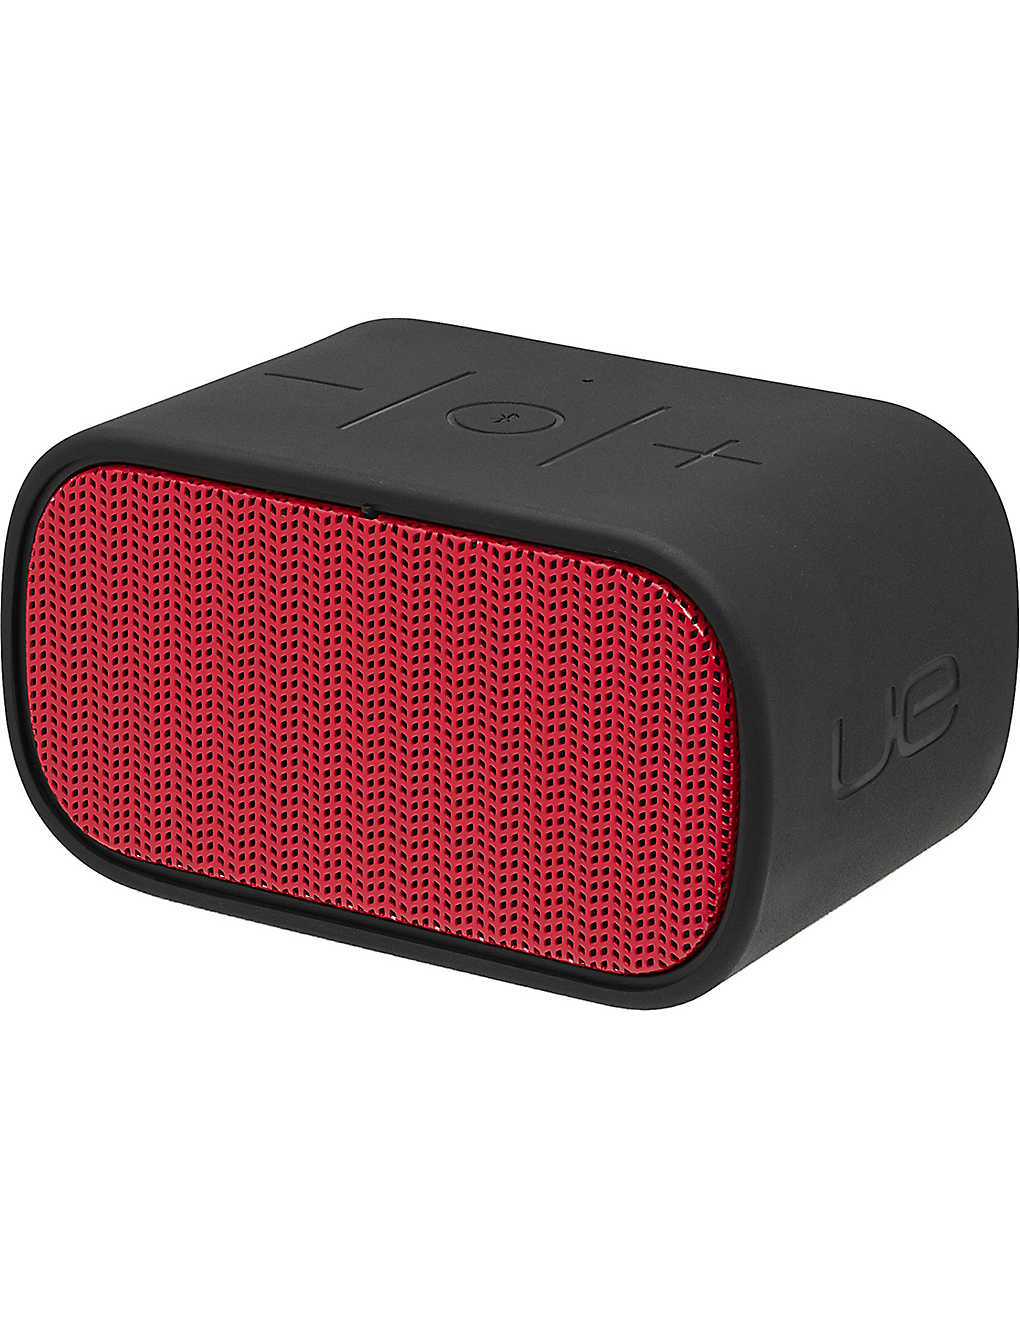 ue mini boom portable speaker